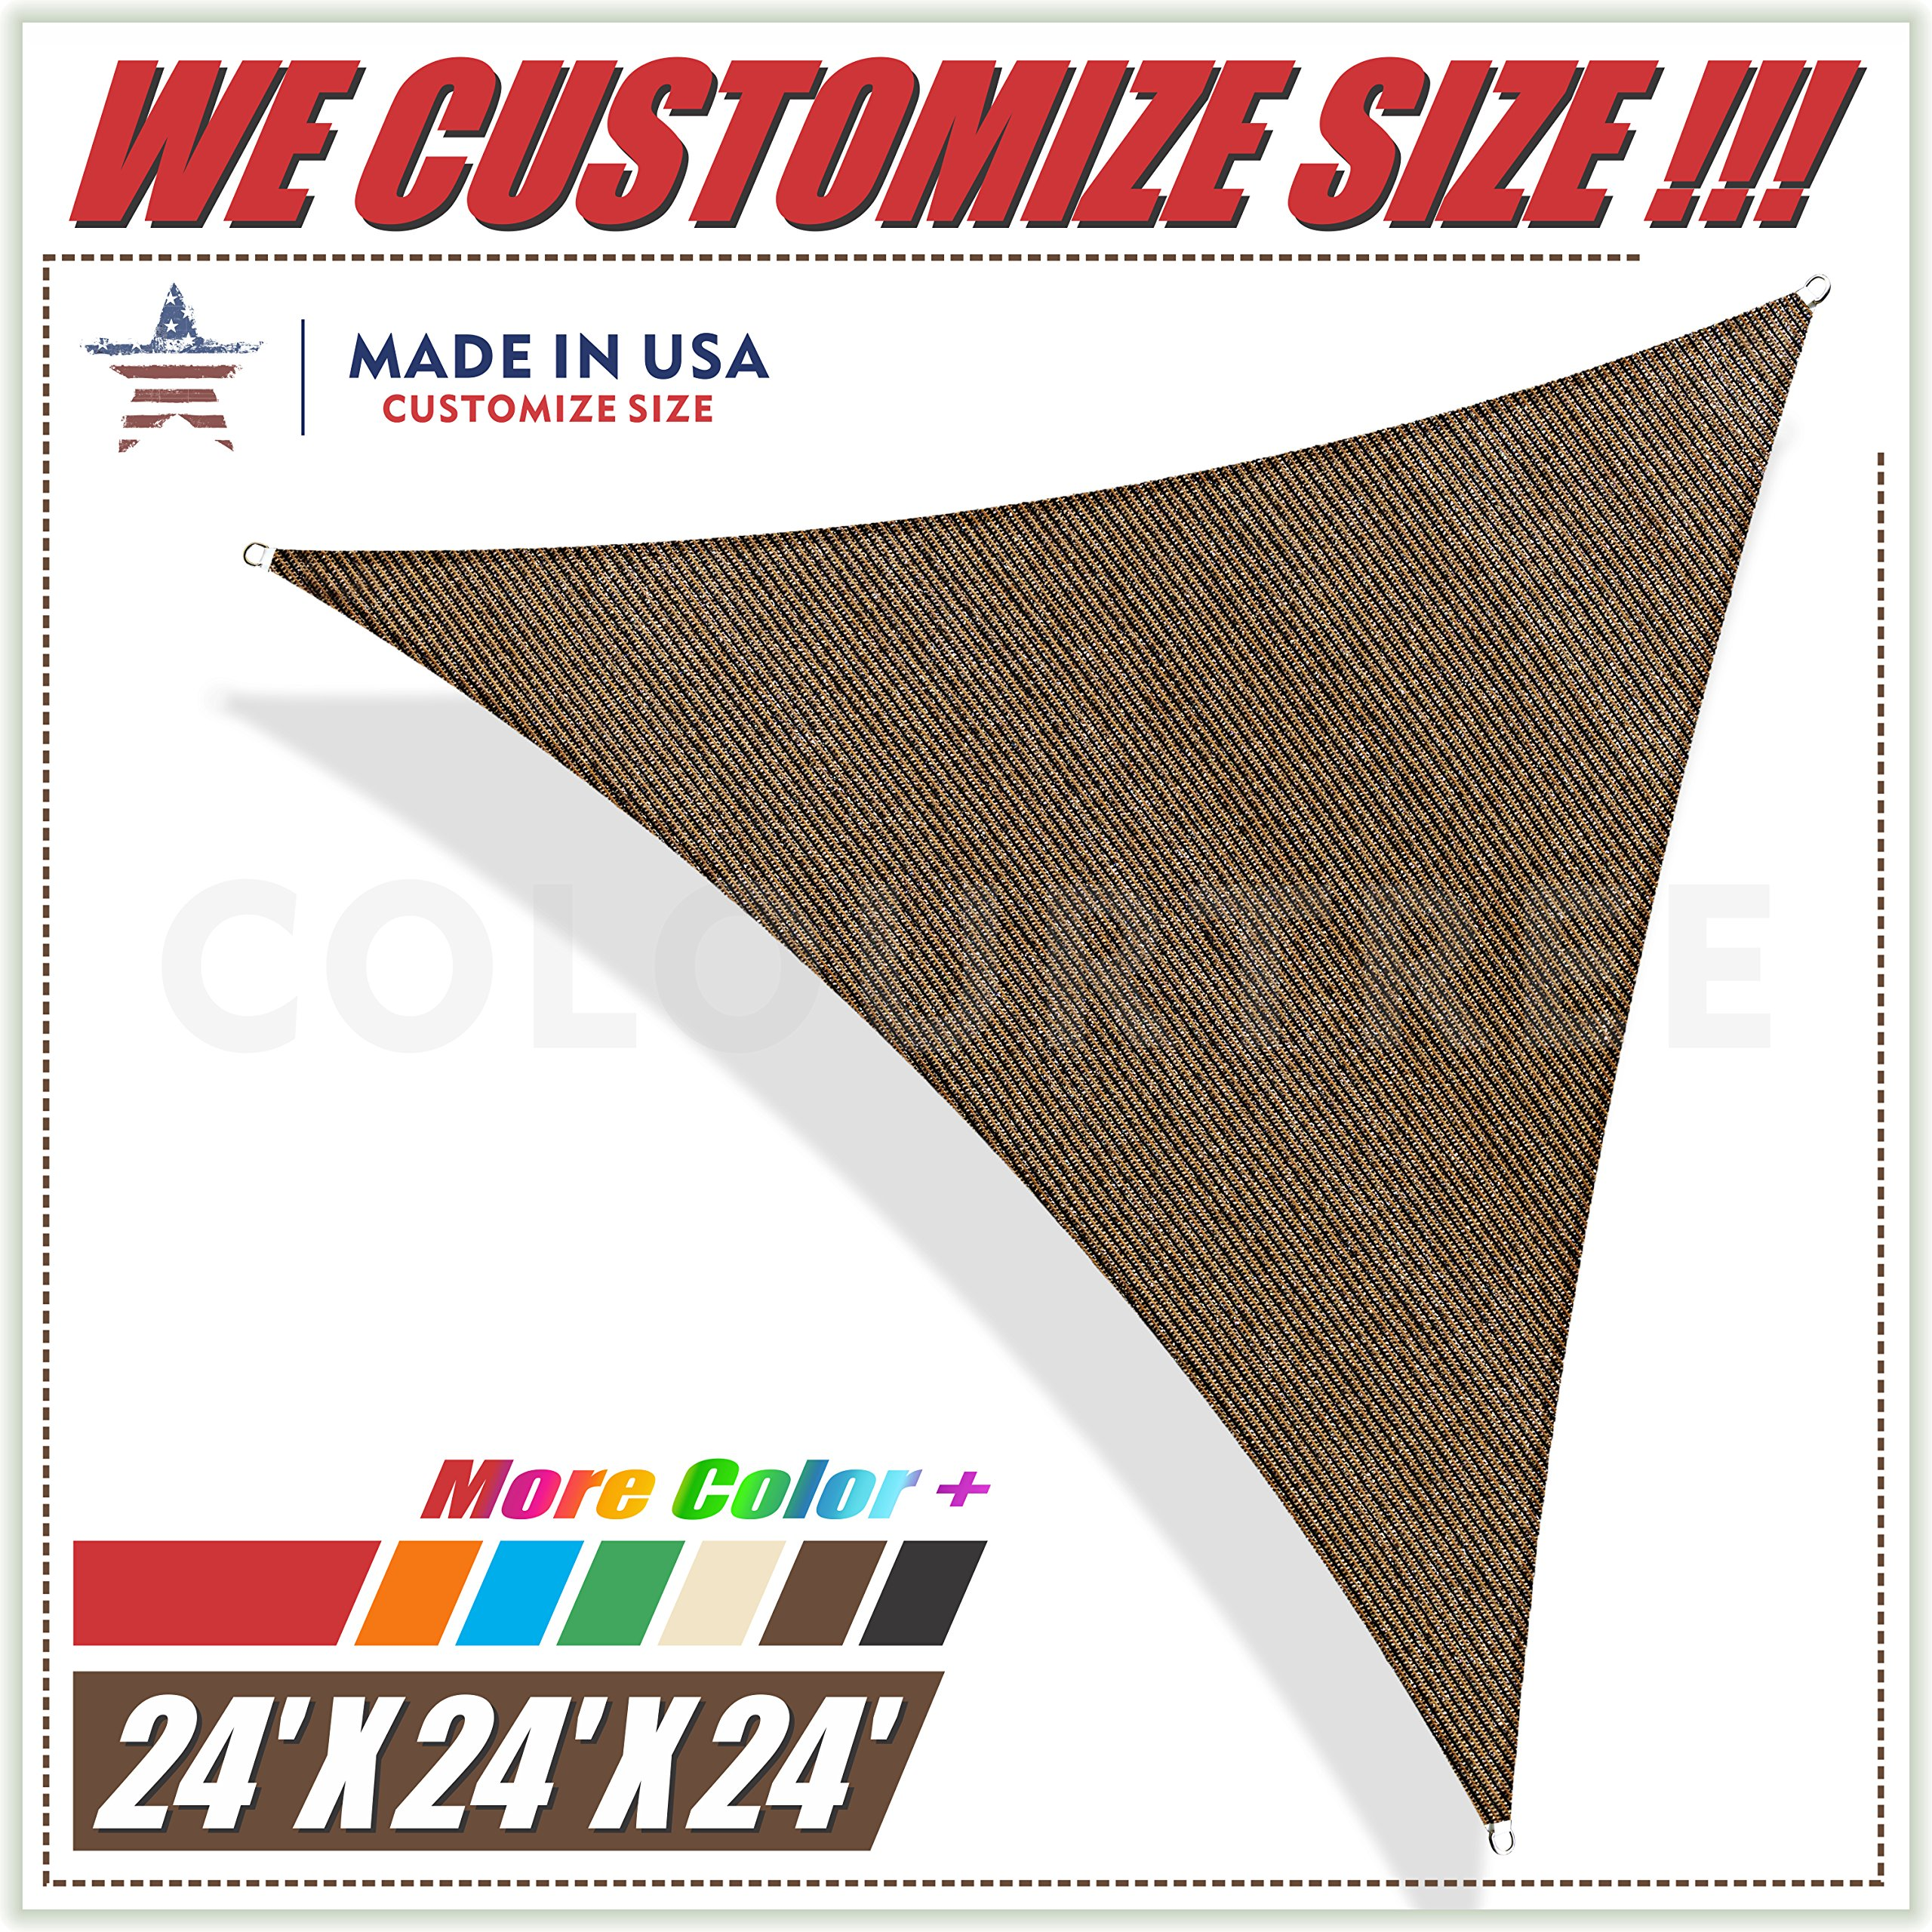 ColourTree 24' x 24' x 24' Brown Sun Shade Sail Triangle Canopy, UV Resistant Heavy Duty Commercial Grade, We Make Custom Size